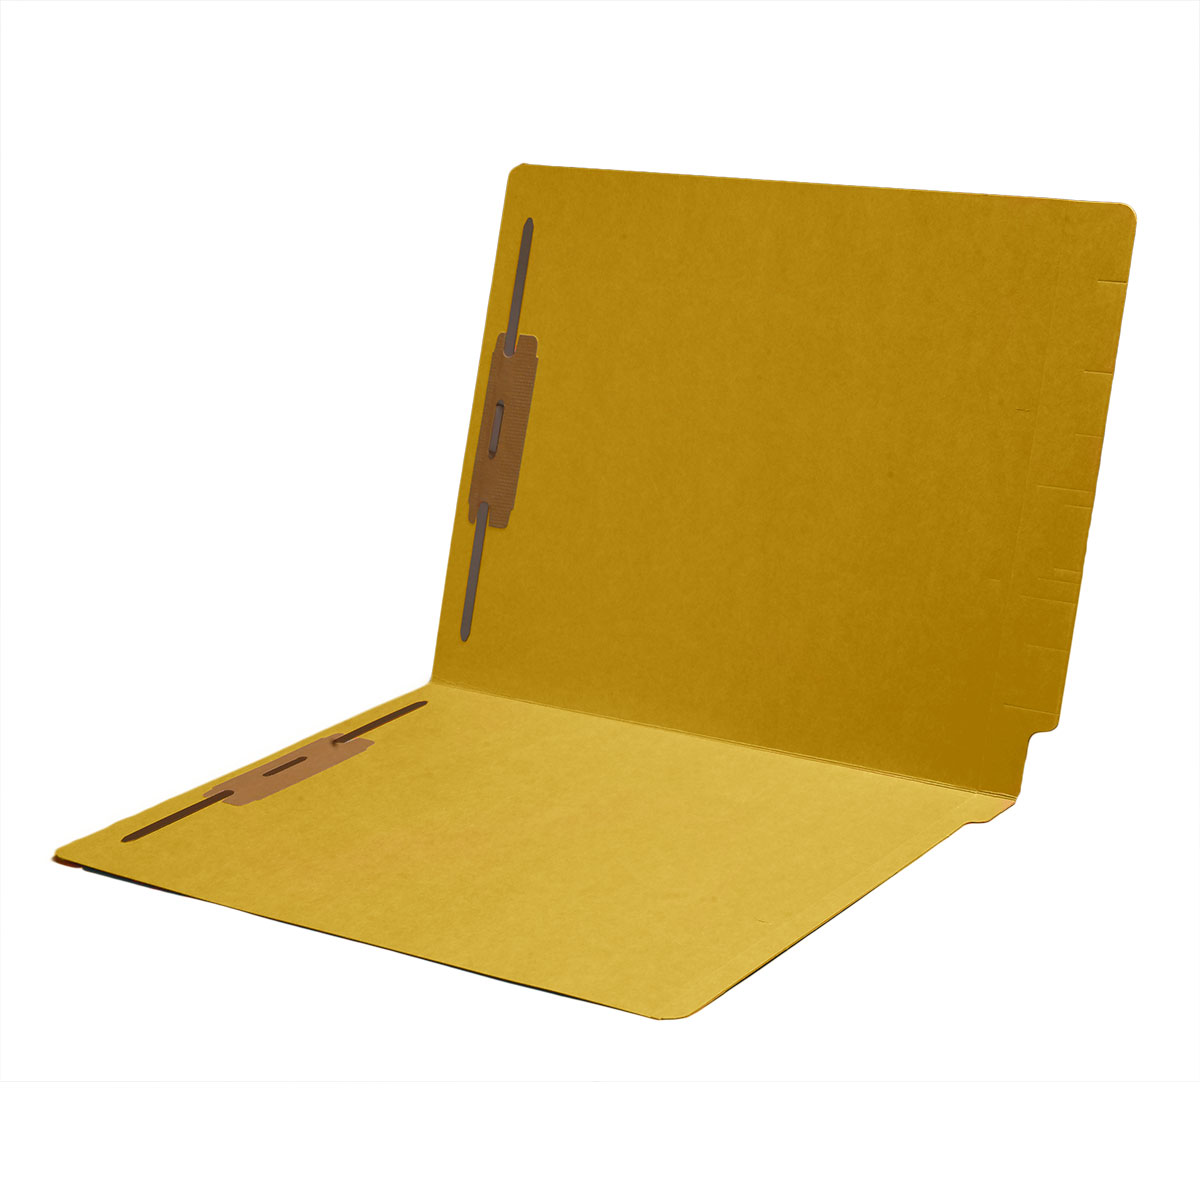 S-1602-YLW - 14 pt Color Folders, Full Cut 2-Ply End Tab, Letter Size, 2 Fasteners in Pos #1 & #3, Yellow (Box of 50)